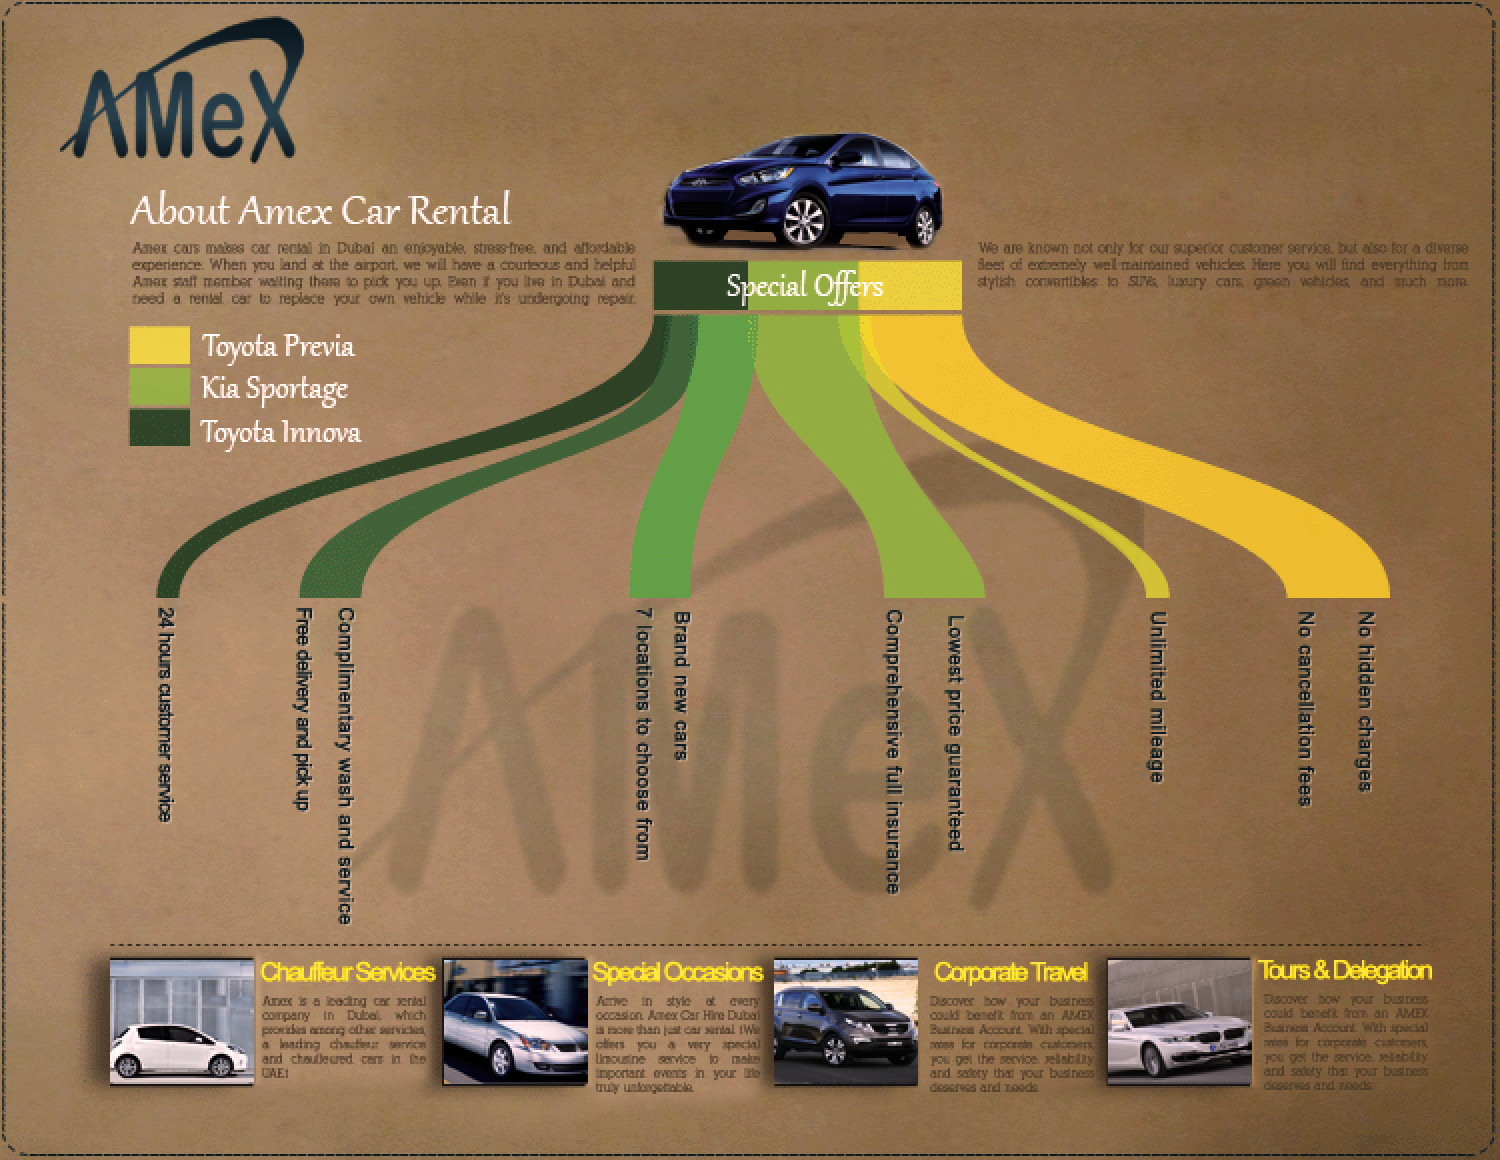 About Amex Car Rental Infographic